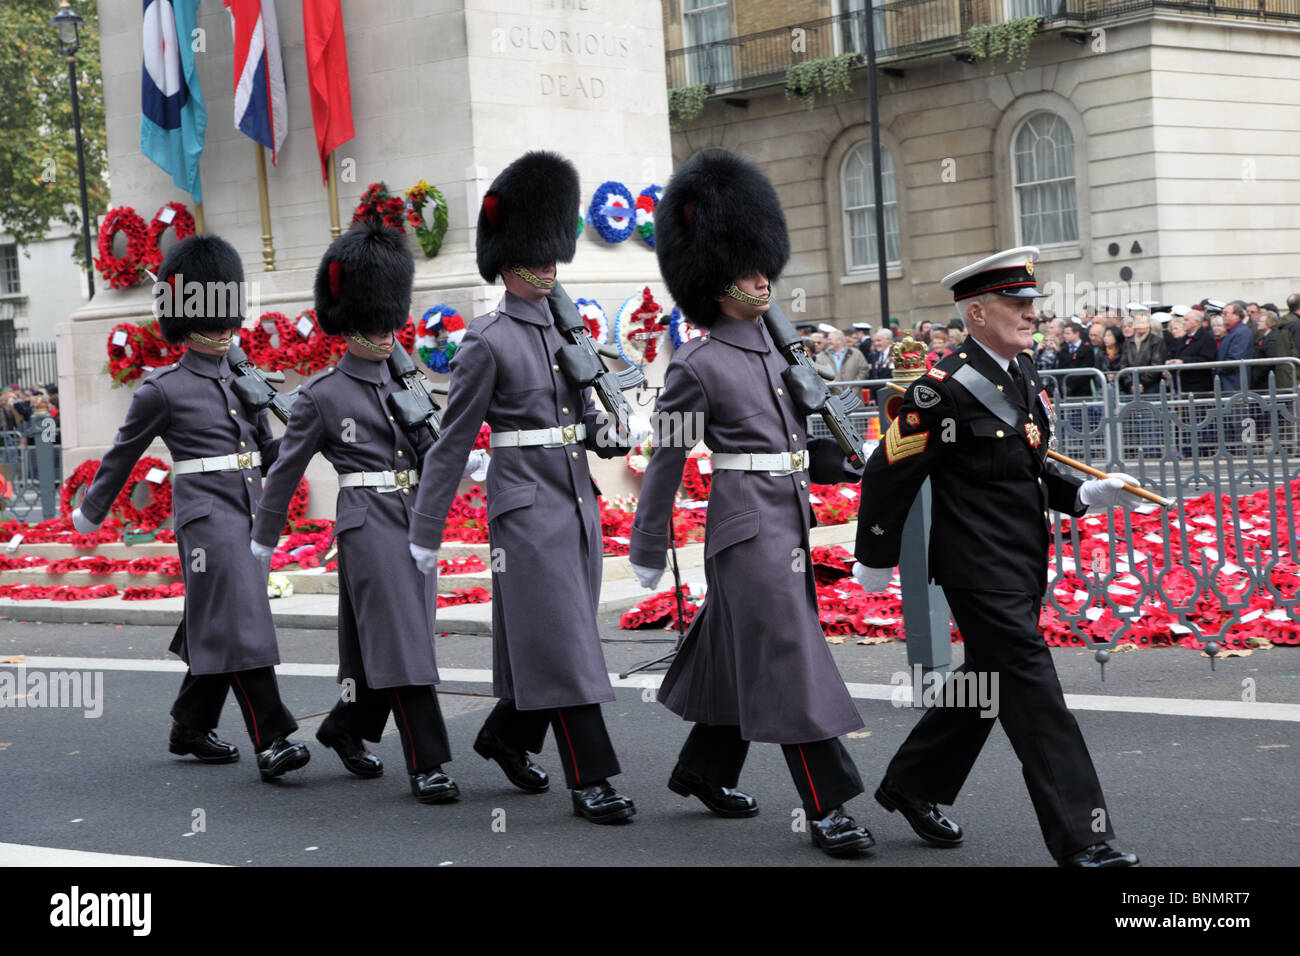 Soldiers marching past the Cenotaph during the Armistice Day Memorial Service in Whitehall, London, SW1. - Stock Image